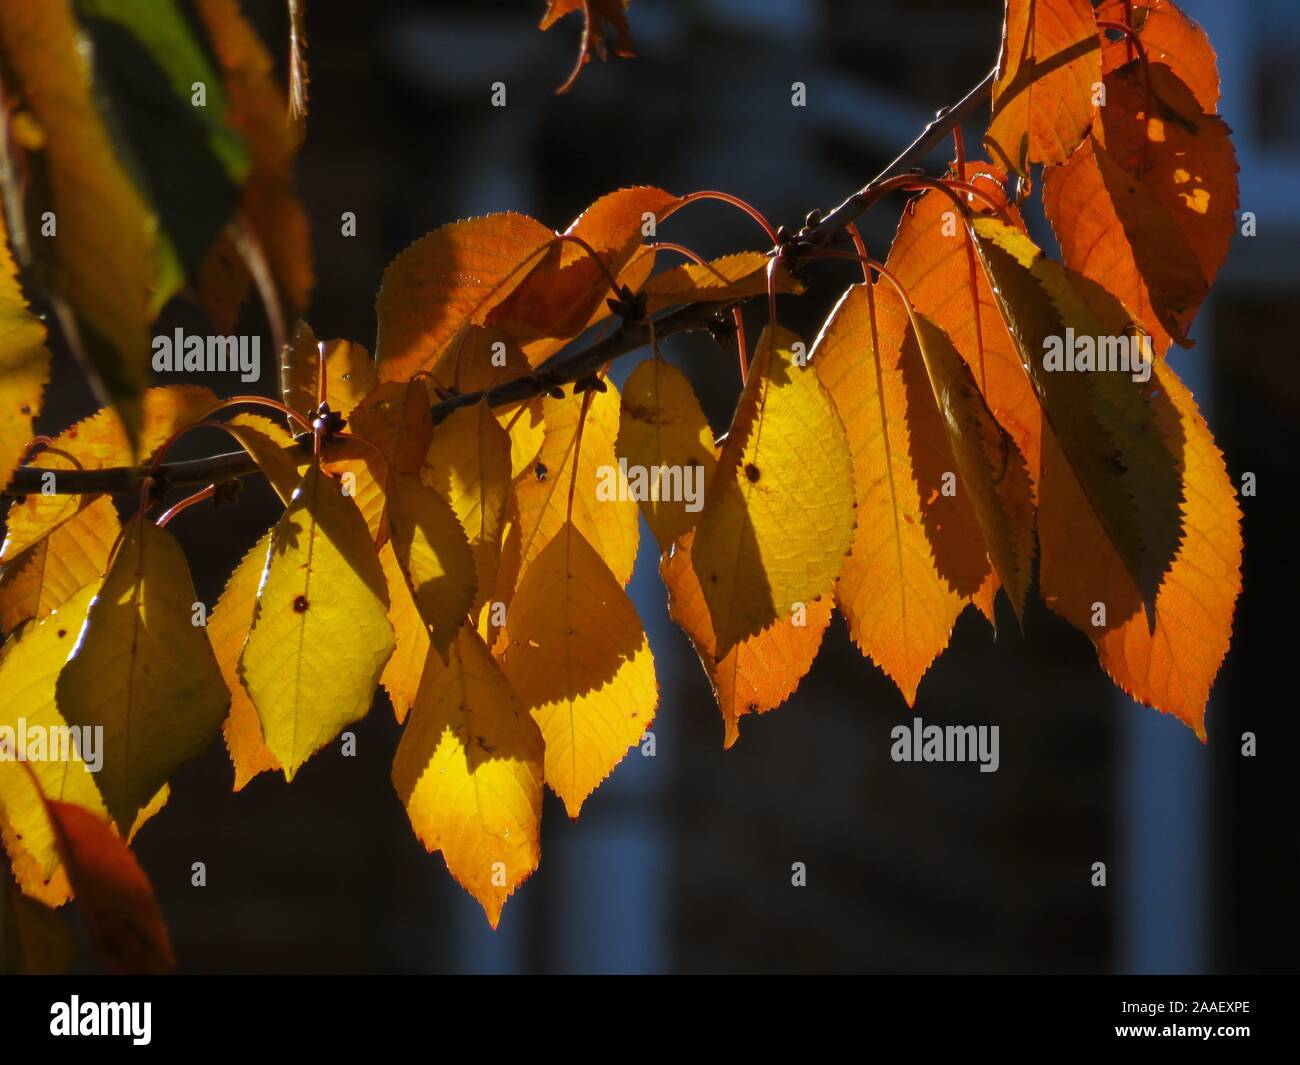 sunshine-through-autumn-leaves-2AAEXPE.jpg